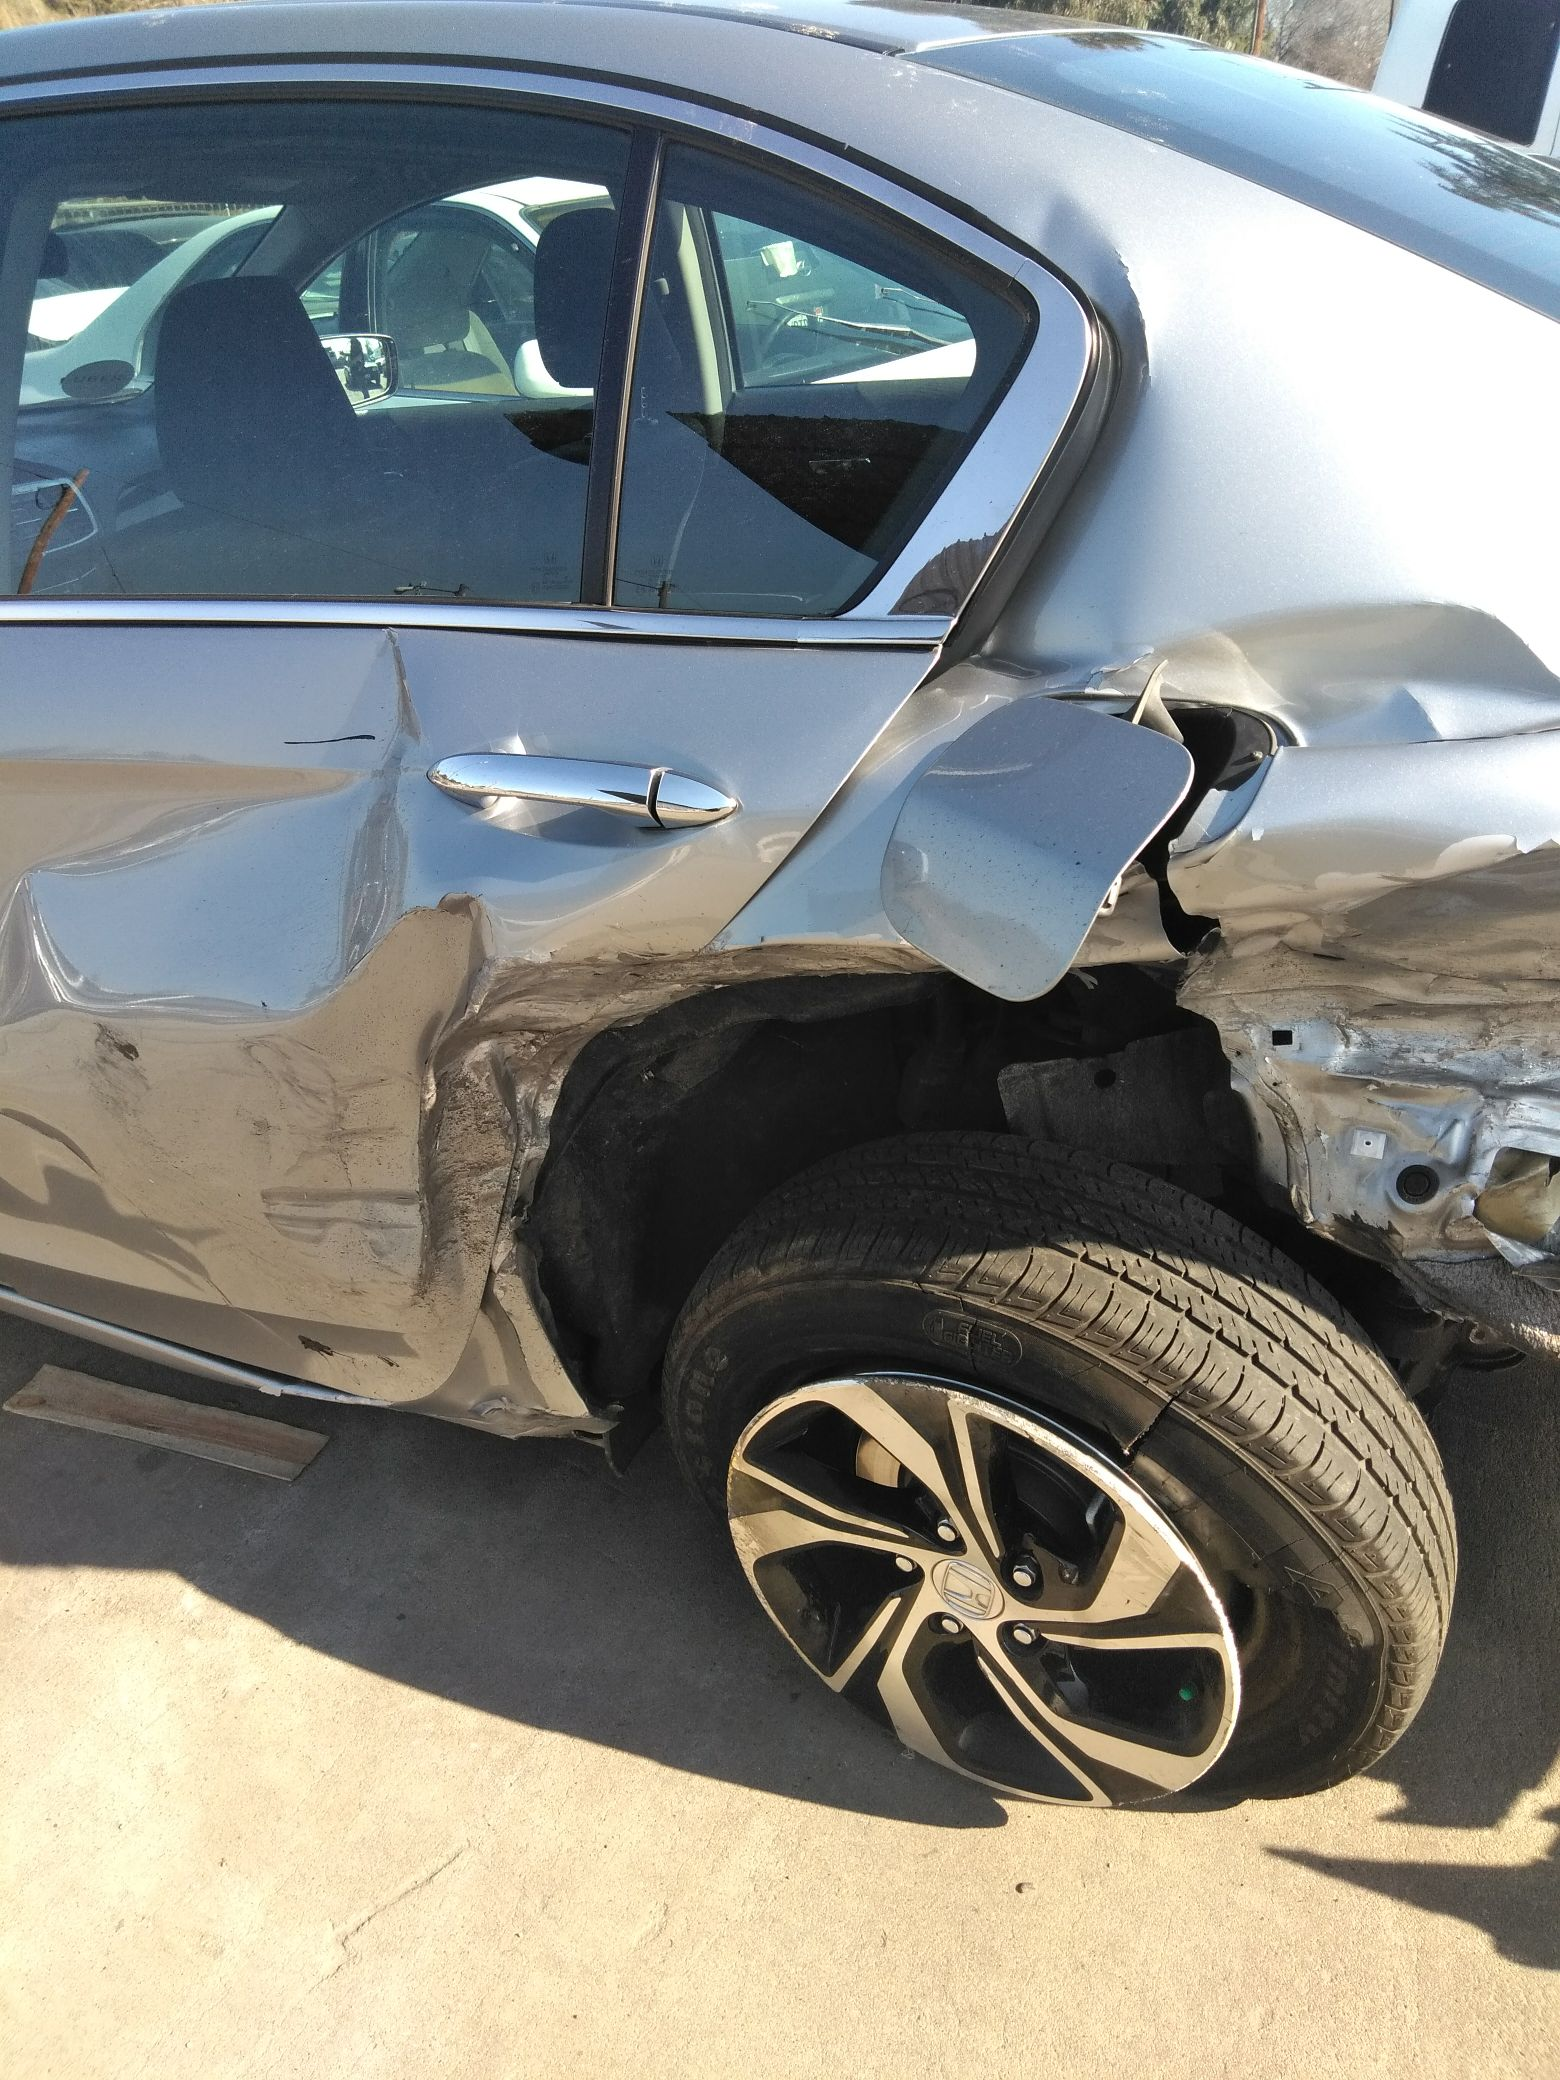 Lower left inner rear wheel detached estimated auto damages $12,000.  Courtesy Natasha Arnold.